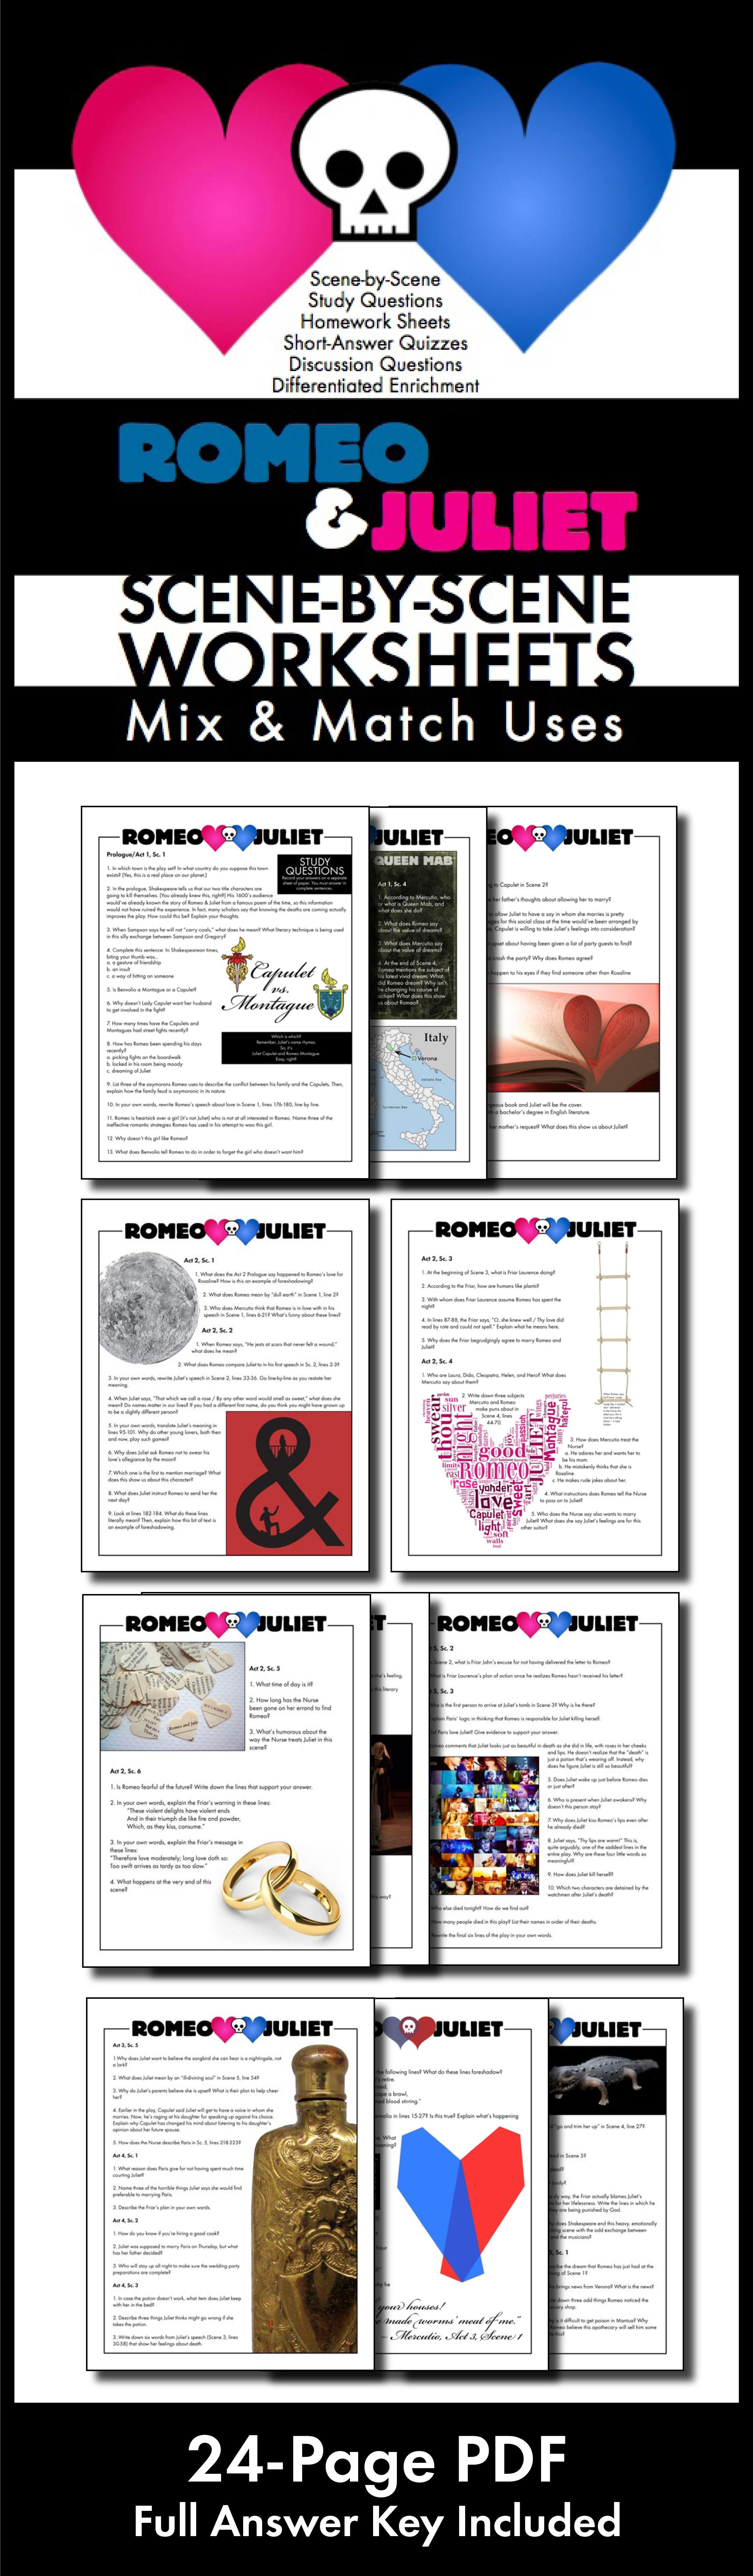 Pin By Laura Randazzo On Tpt Language Art Lesson Teaching Literature Shakespeare Romeo And Juliet Prologue Act 1 Study Guide Answers